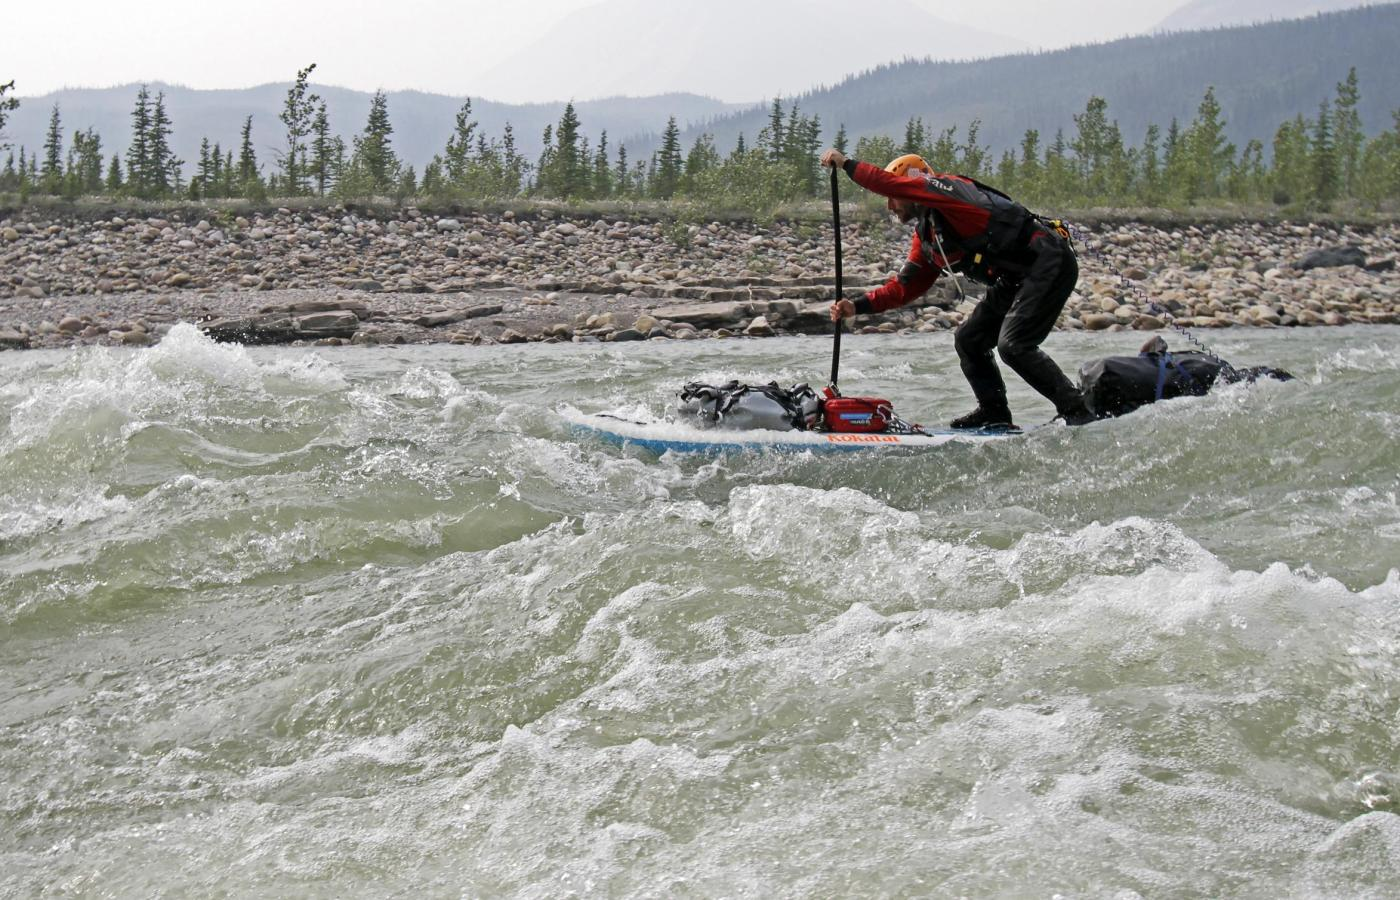 Whitewater paddleboarding on the mountain river